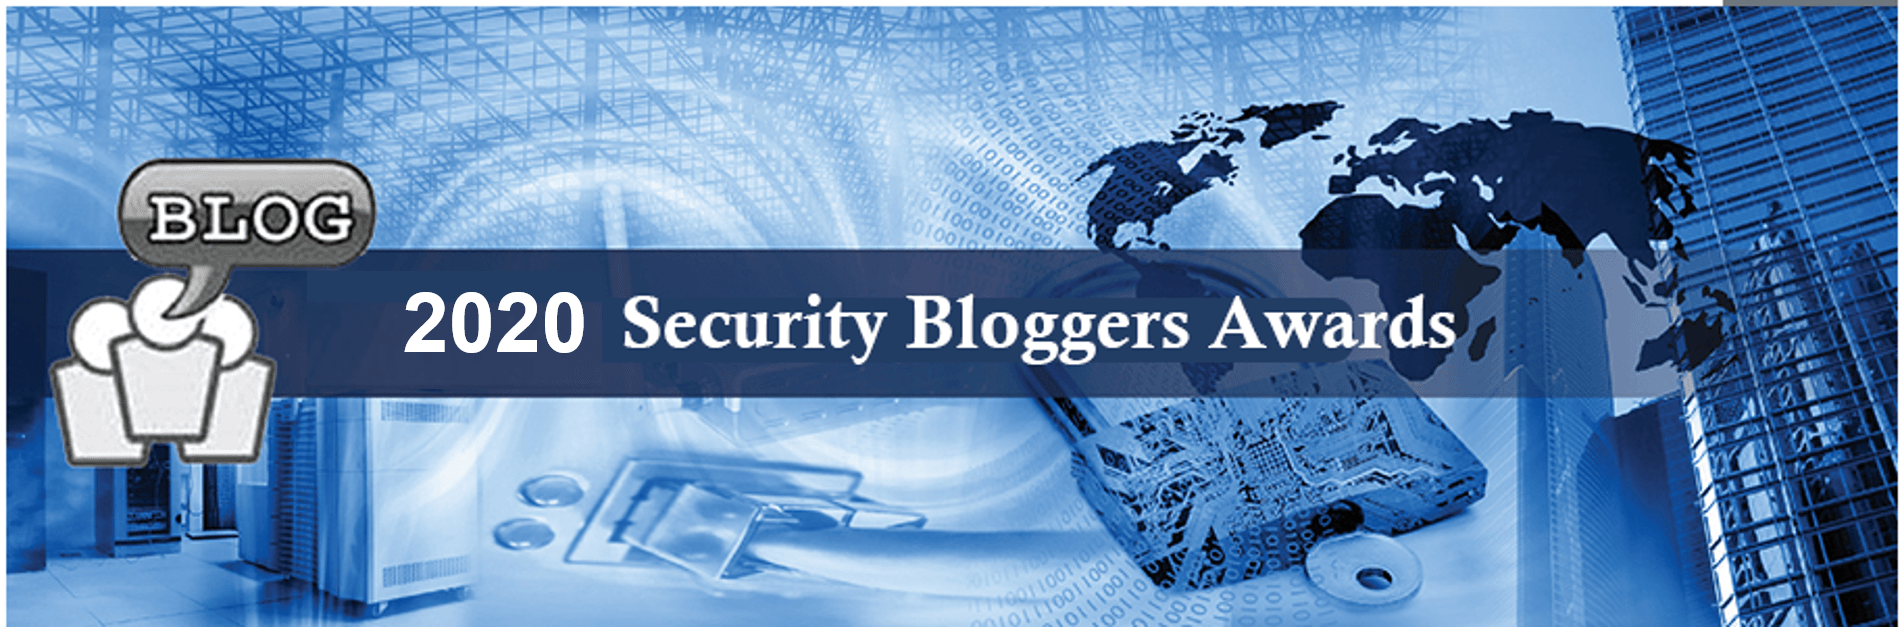 2020 Best New Blog - Security Bloggers Awards